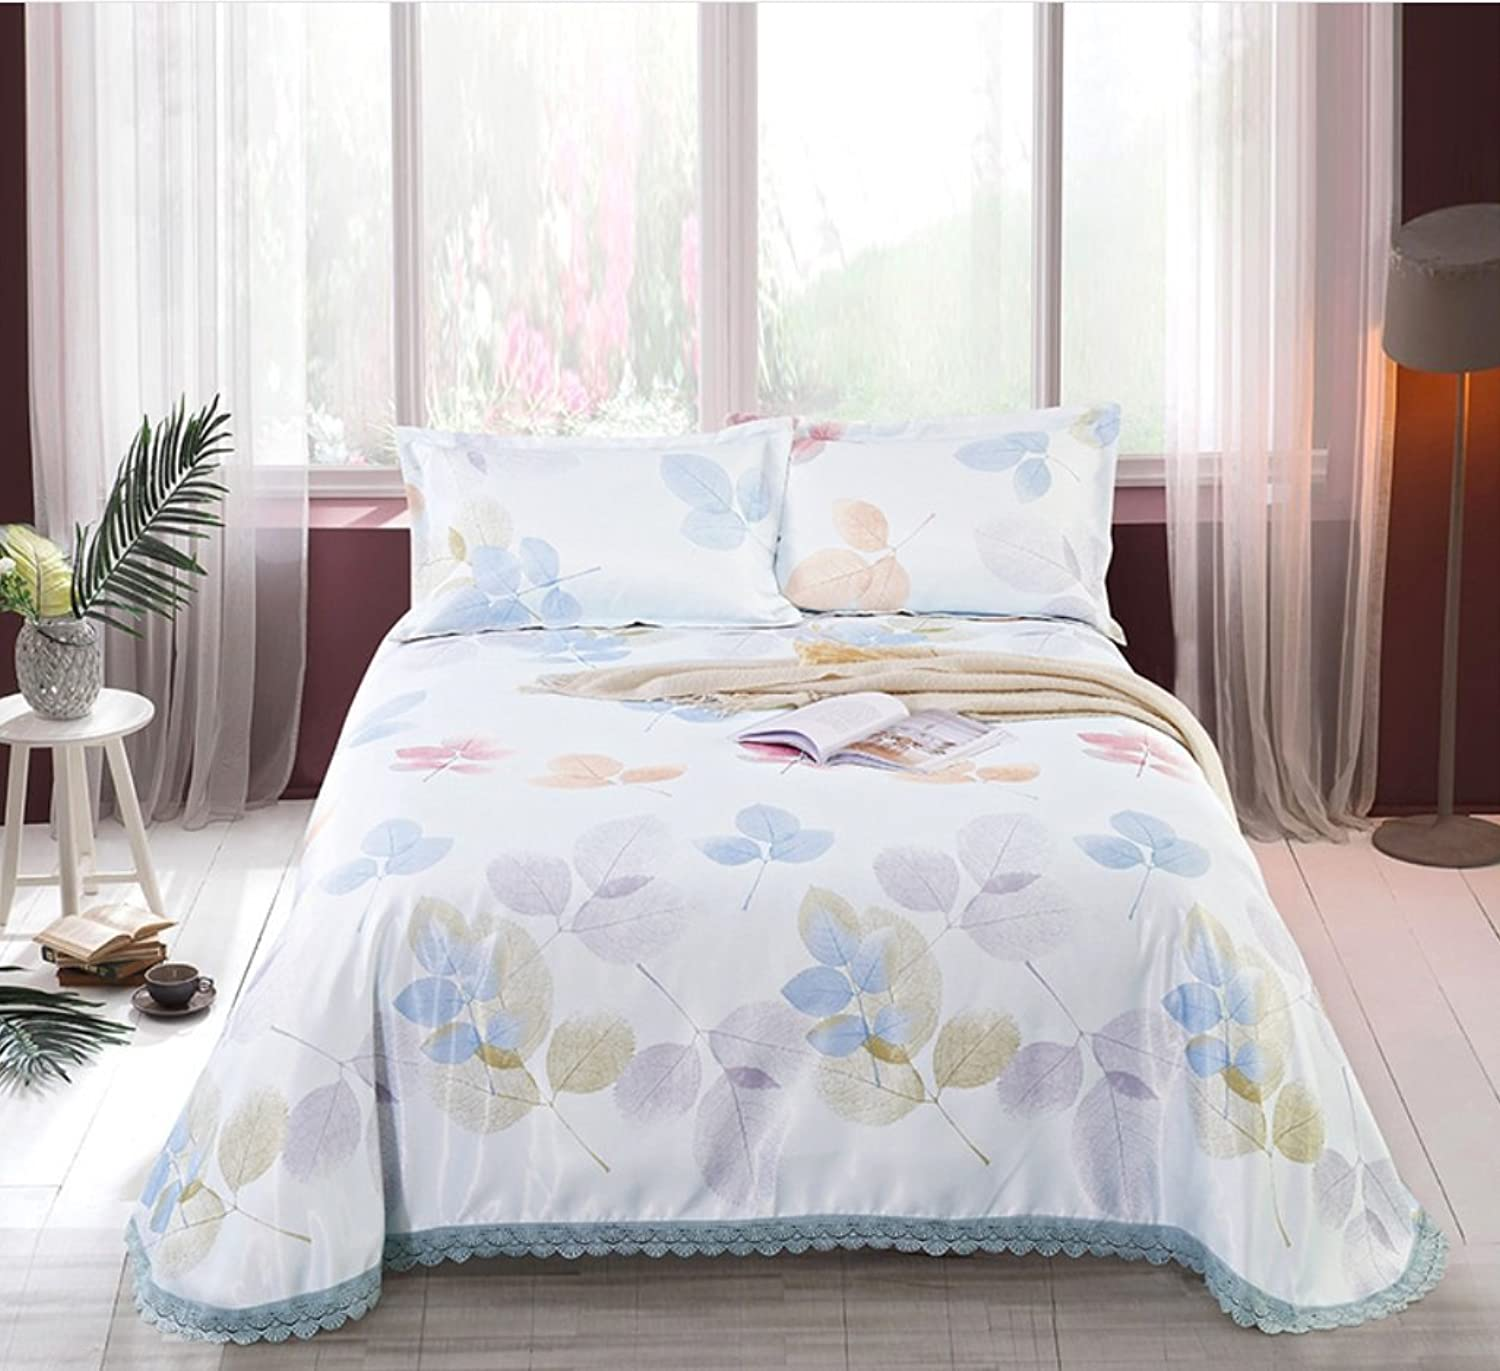 Washed Mat Sheet Linen Printing Lace Ice Silk Mat Three Sets ZXCV (color   7, Size   250  250cm)